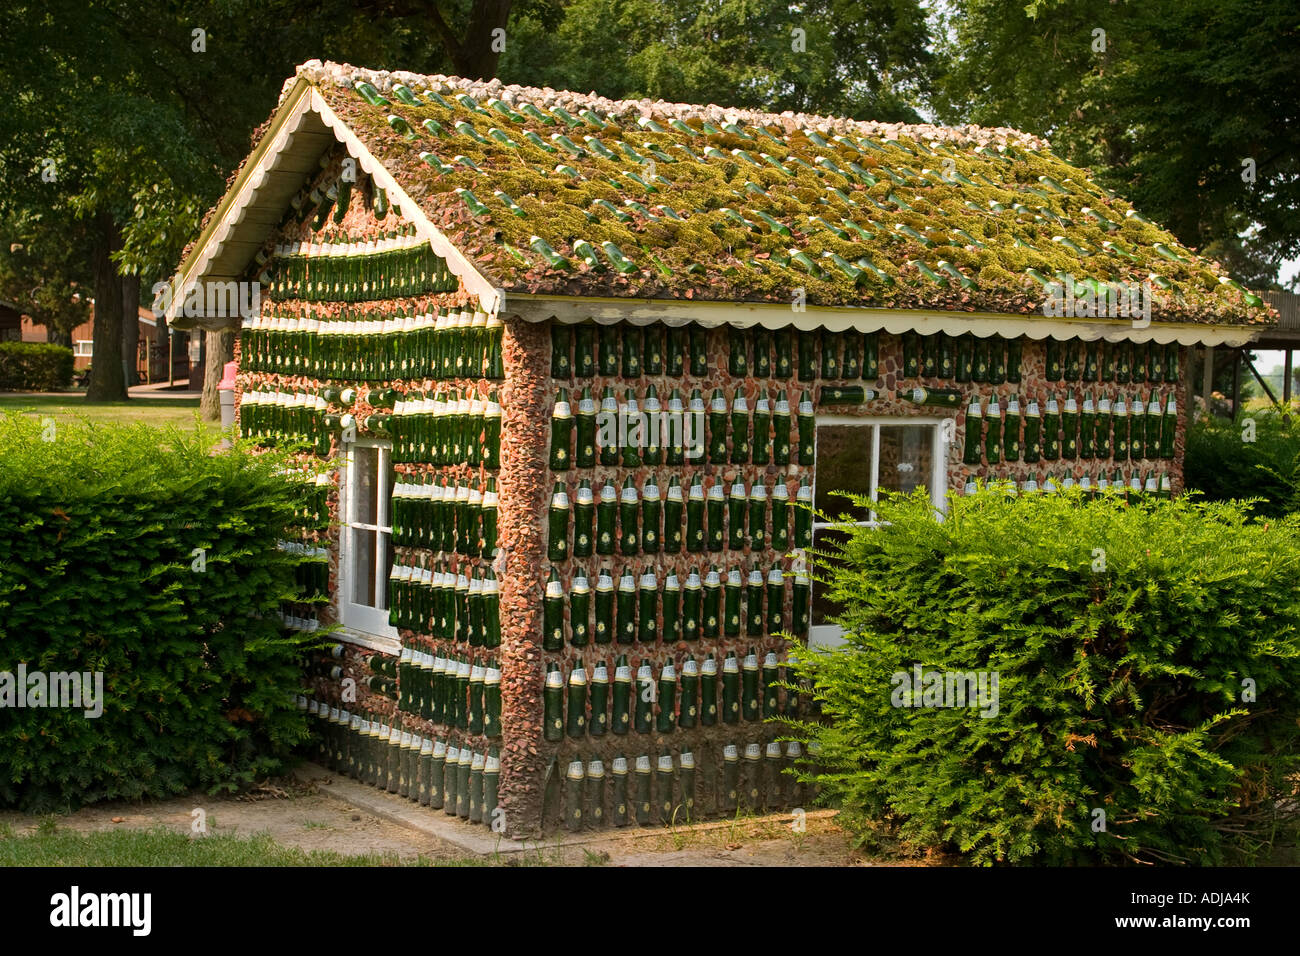 Superior ILLINOIS Arcola Building Made With Fresca Green Glass Bottles At Rockome  Gardens